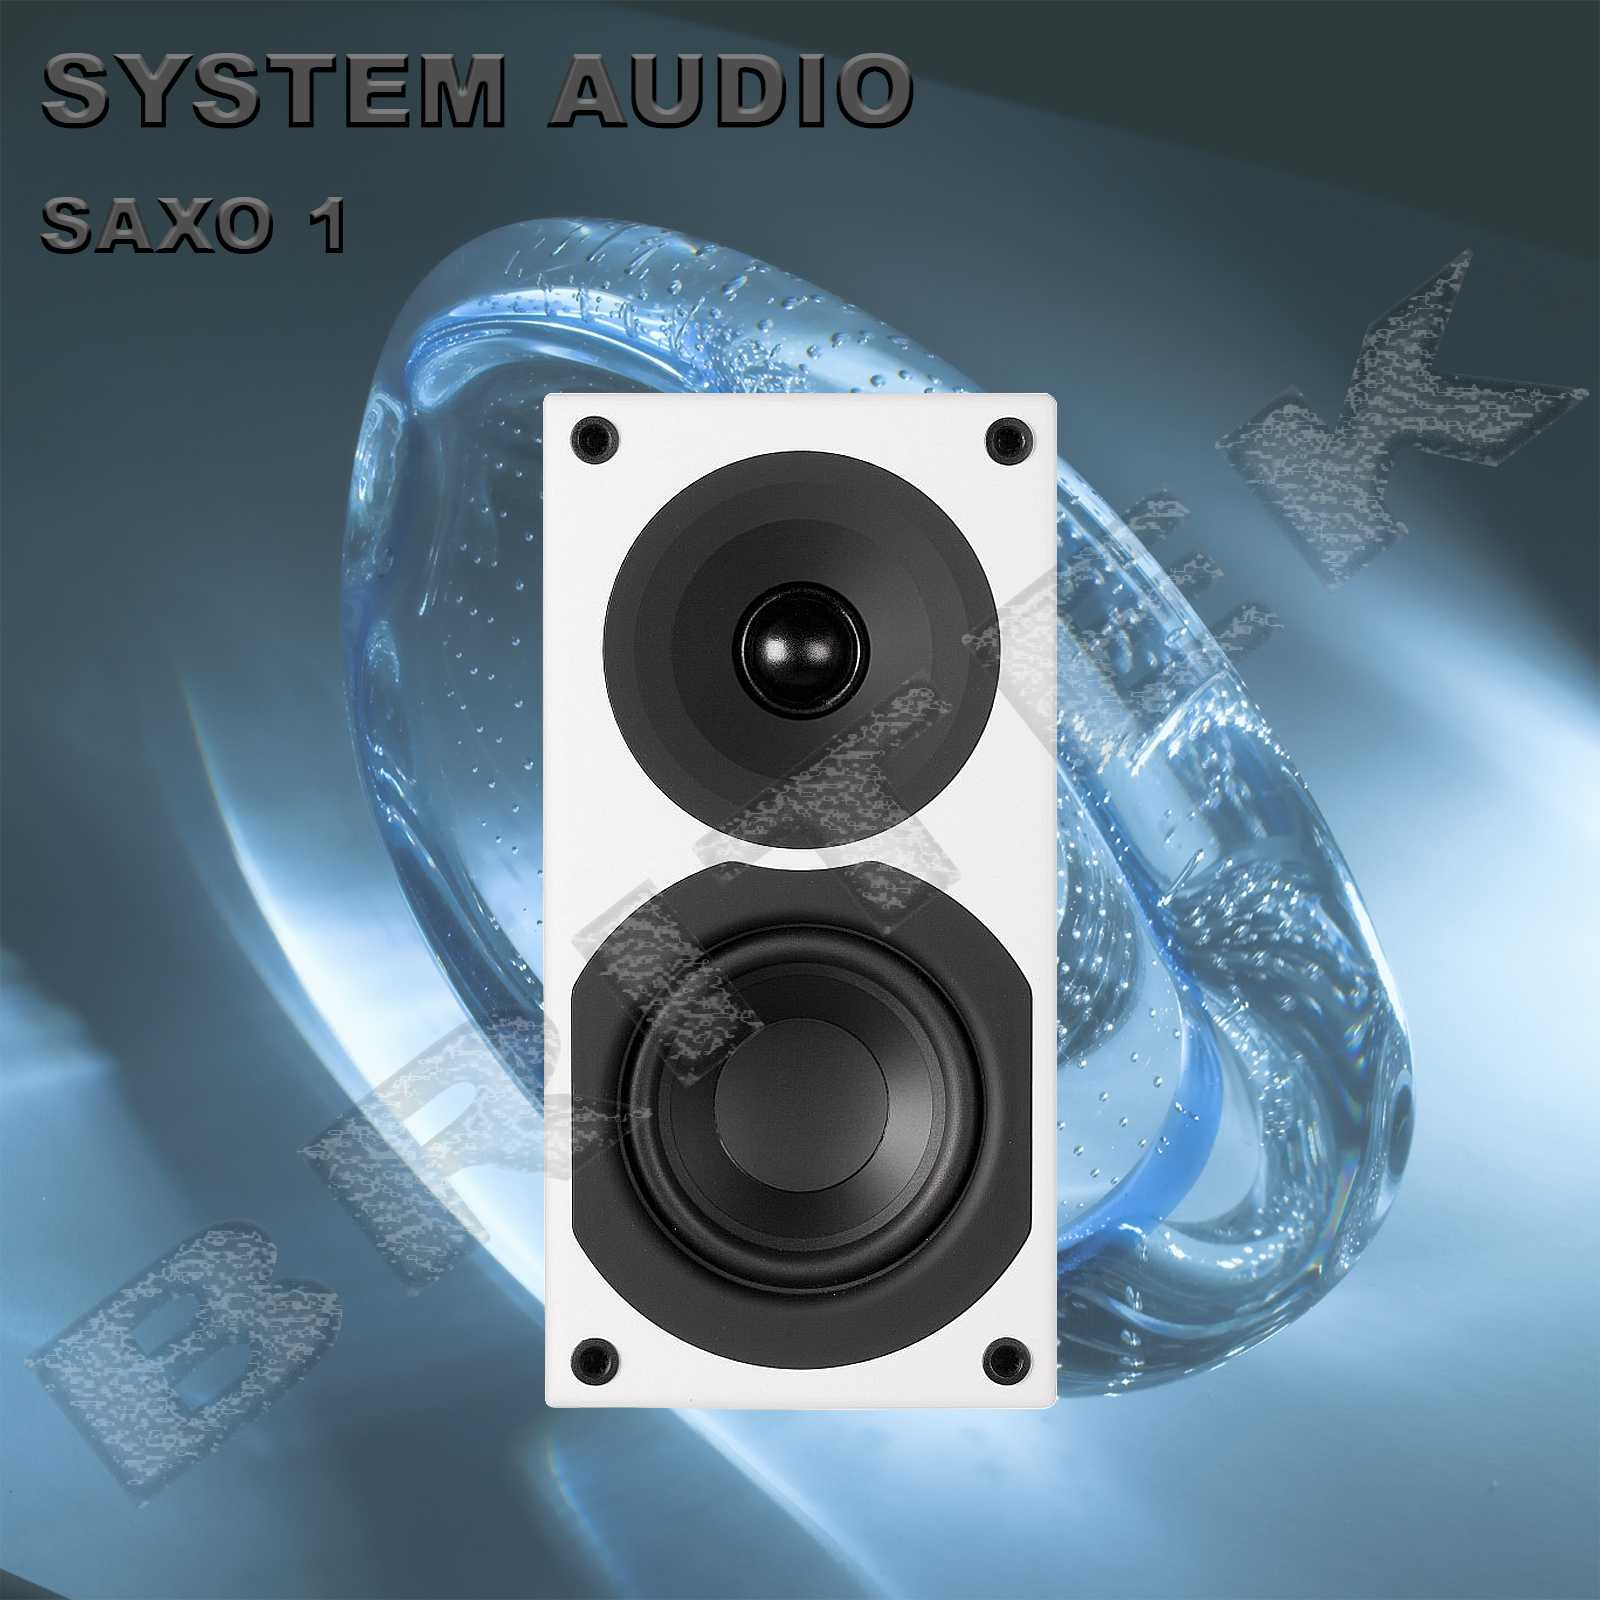 SYSTEM AUDIO SAXO 1